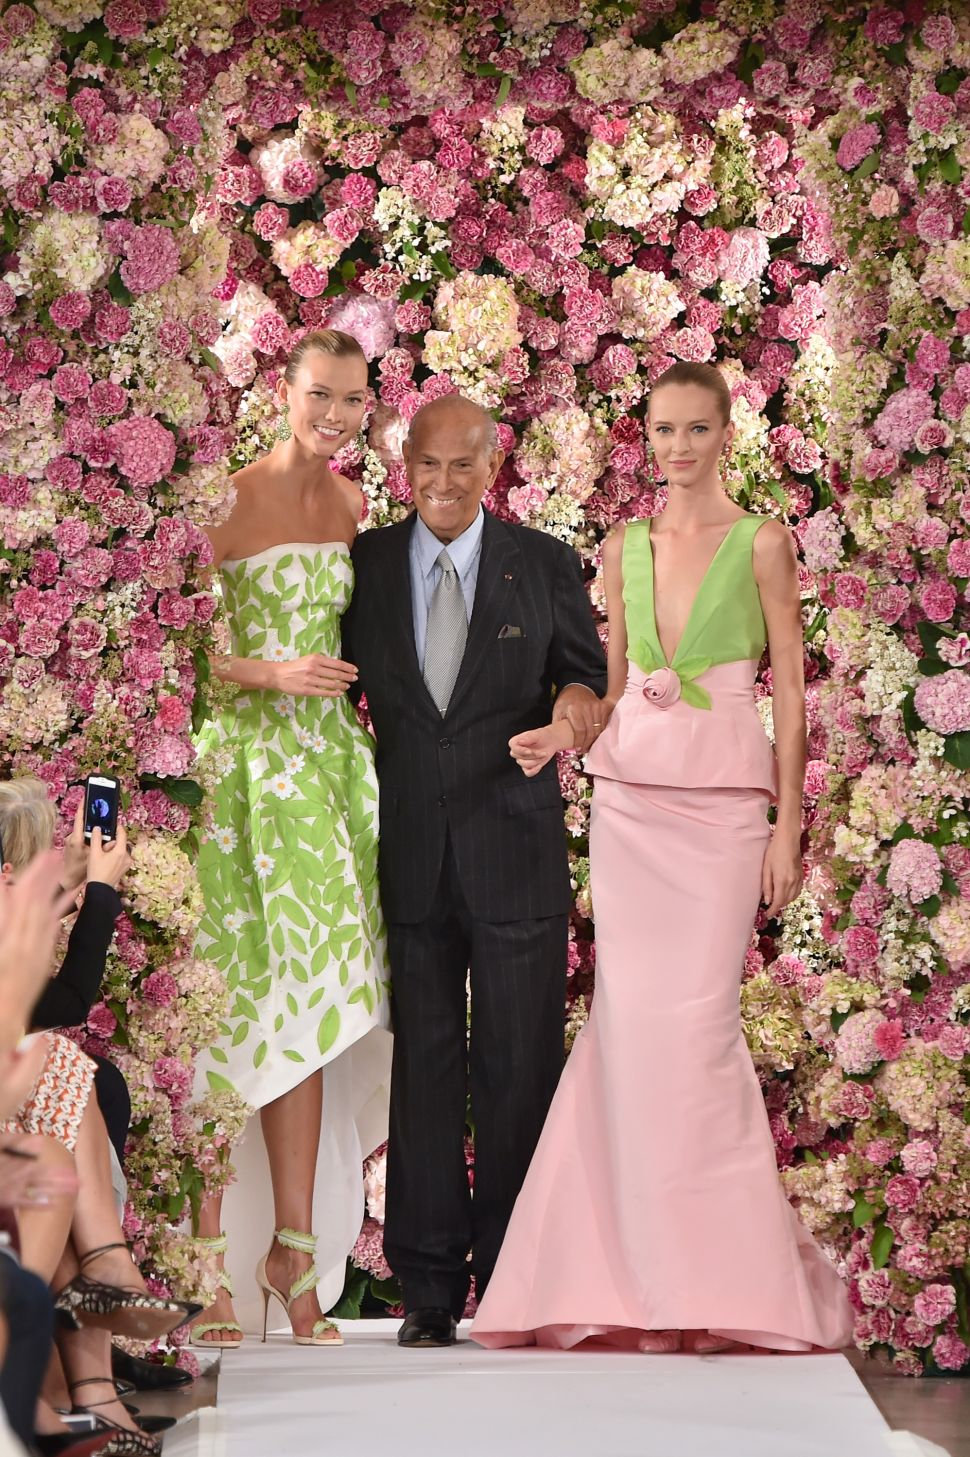 Oscar de la Renta is Coming Soon to a Postage Stamp Near You